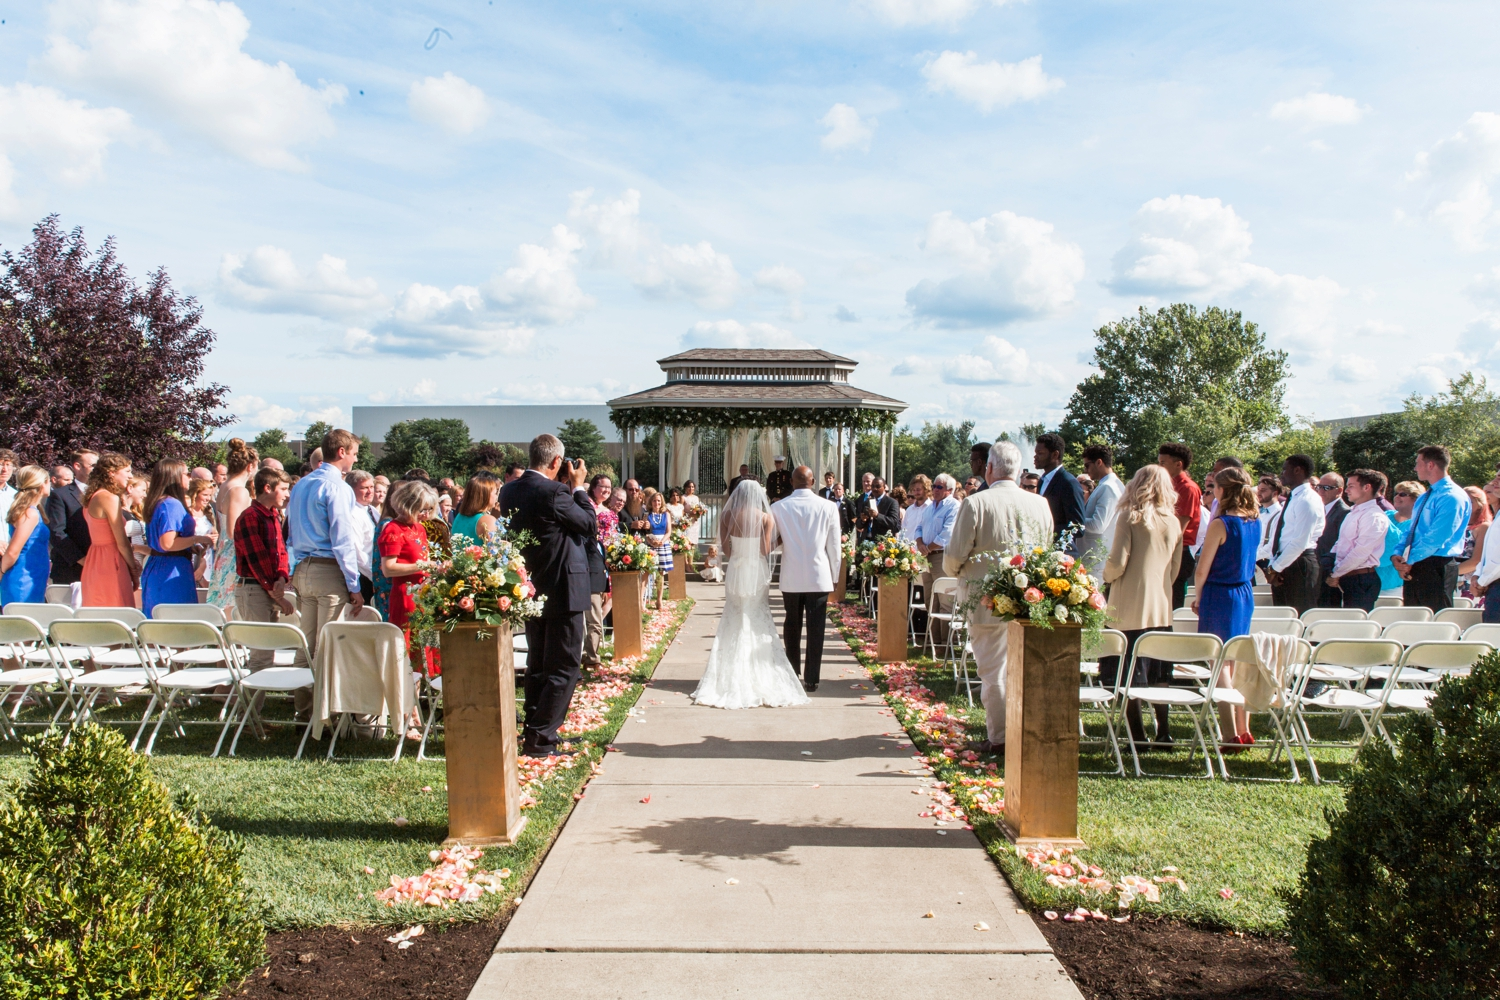 Wedding-at-The-Savannah-Center-West-Chester-Ohio-Photography-Chloe-Luka-Photography_7486.jpg